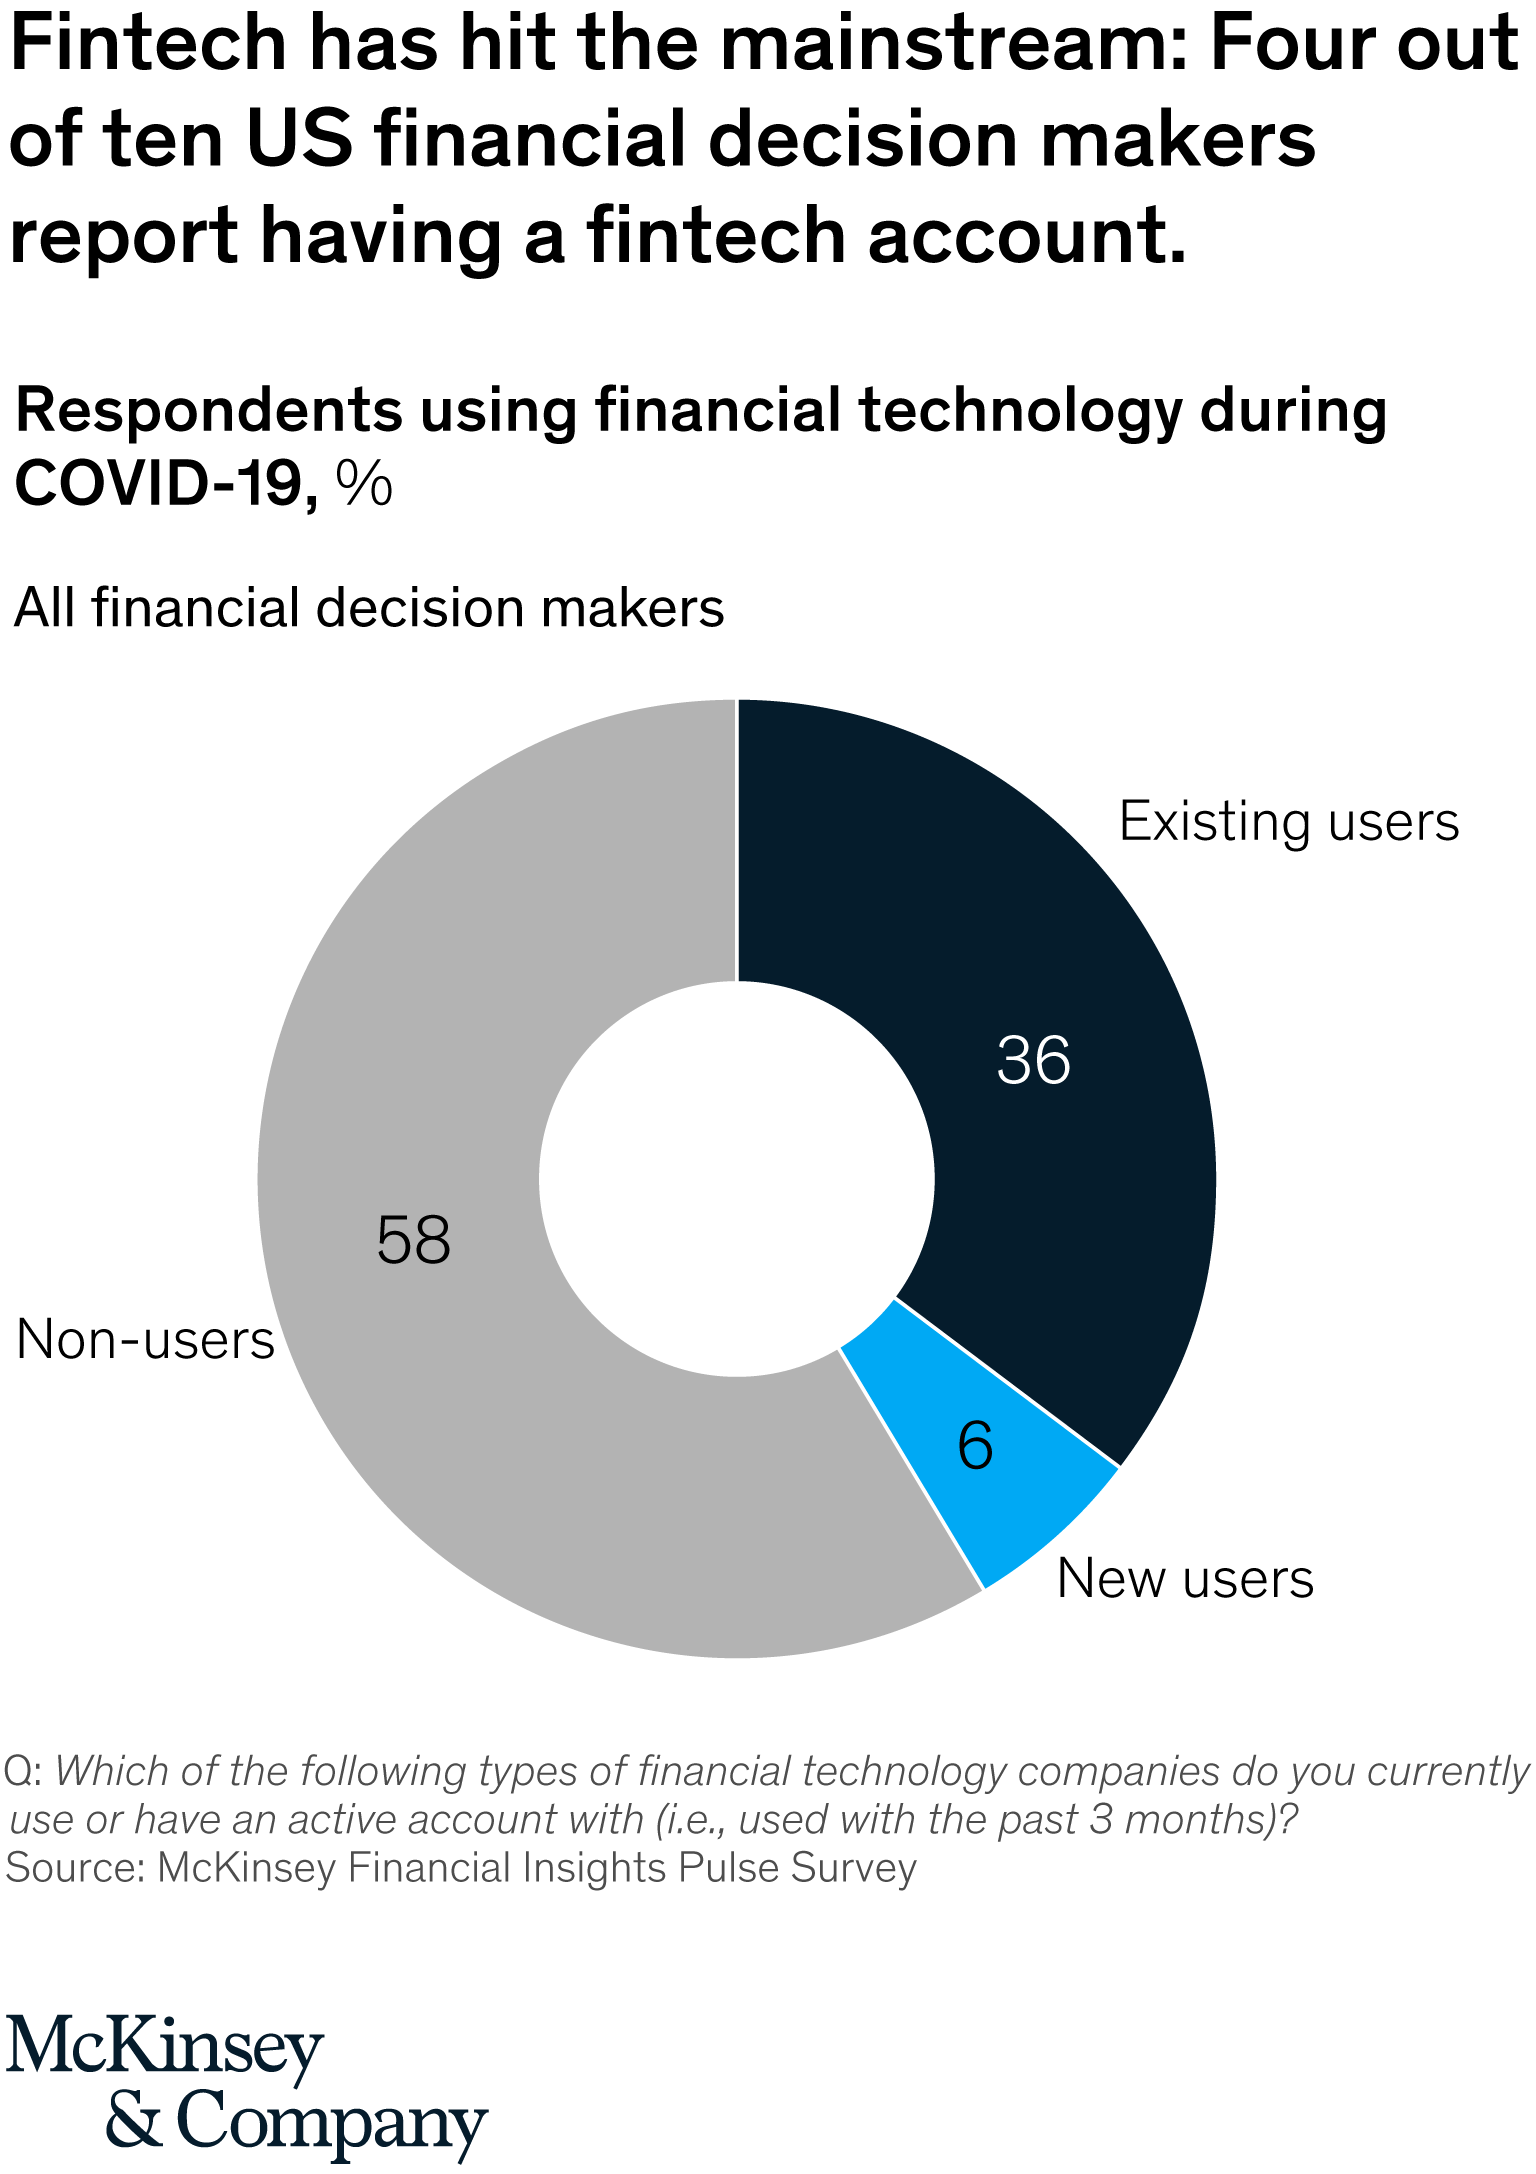 Respondents using financial technology during COVID-19, %, Source- McKinsey Financial Insights Pulse Survey